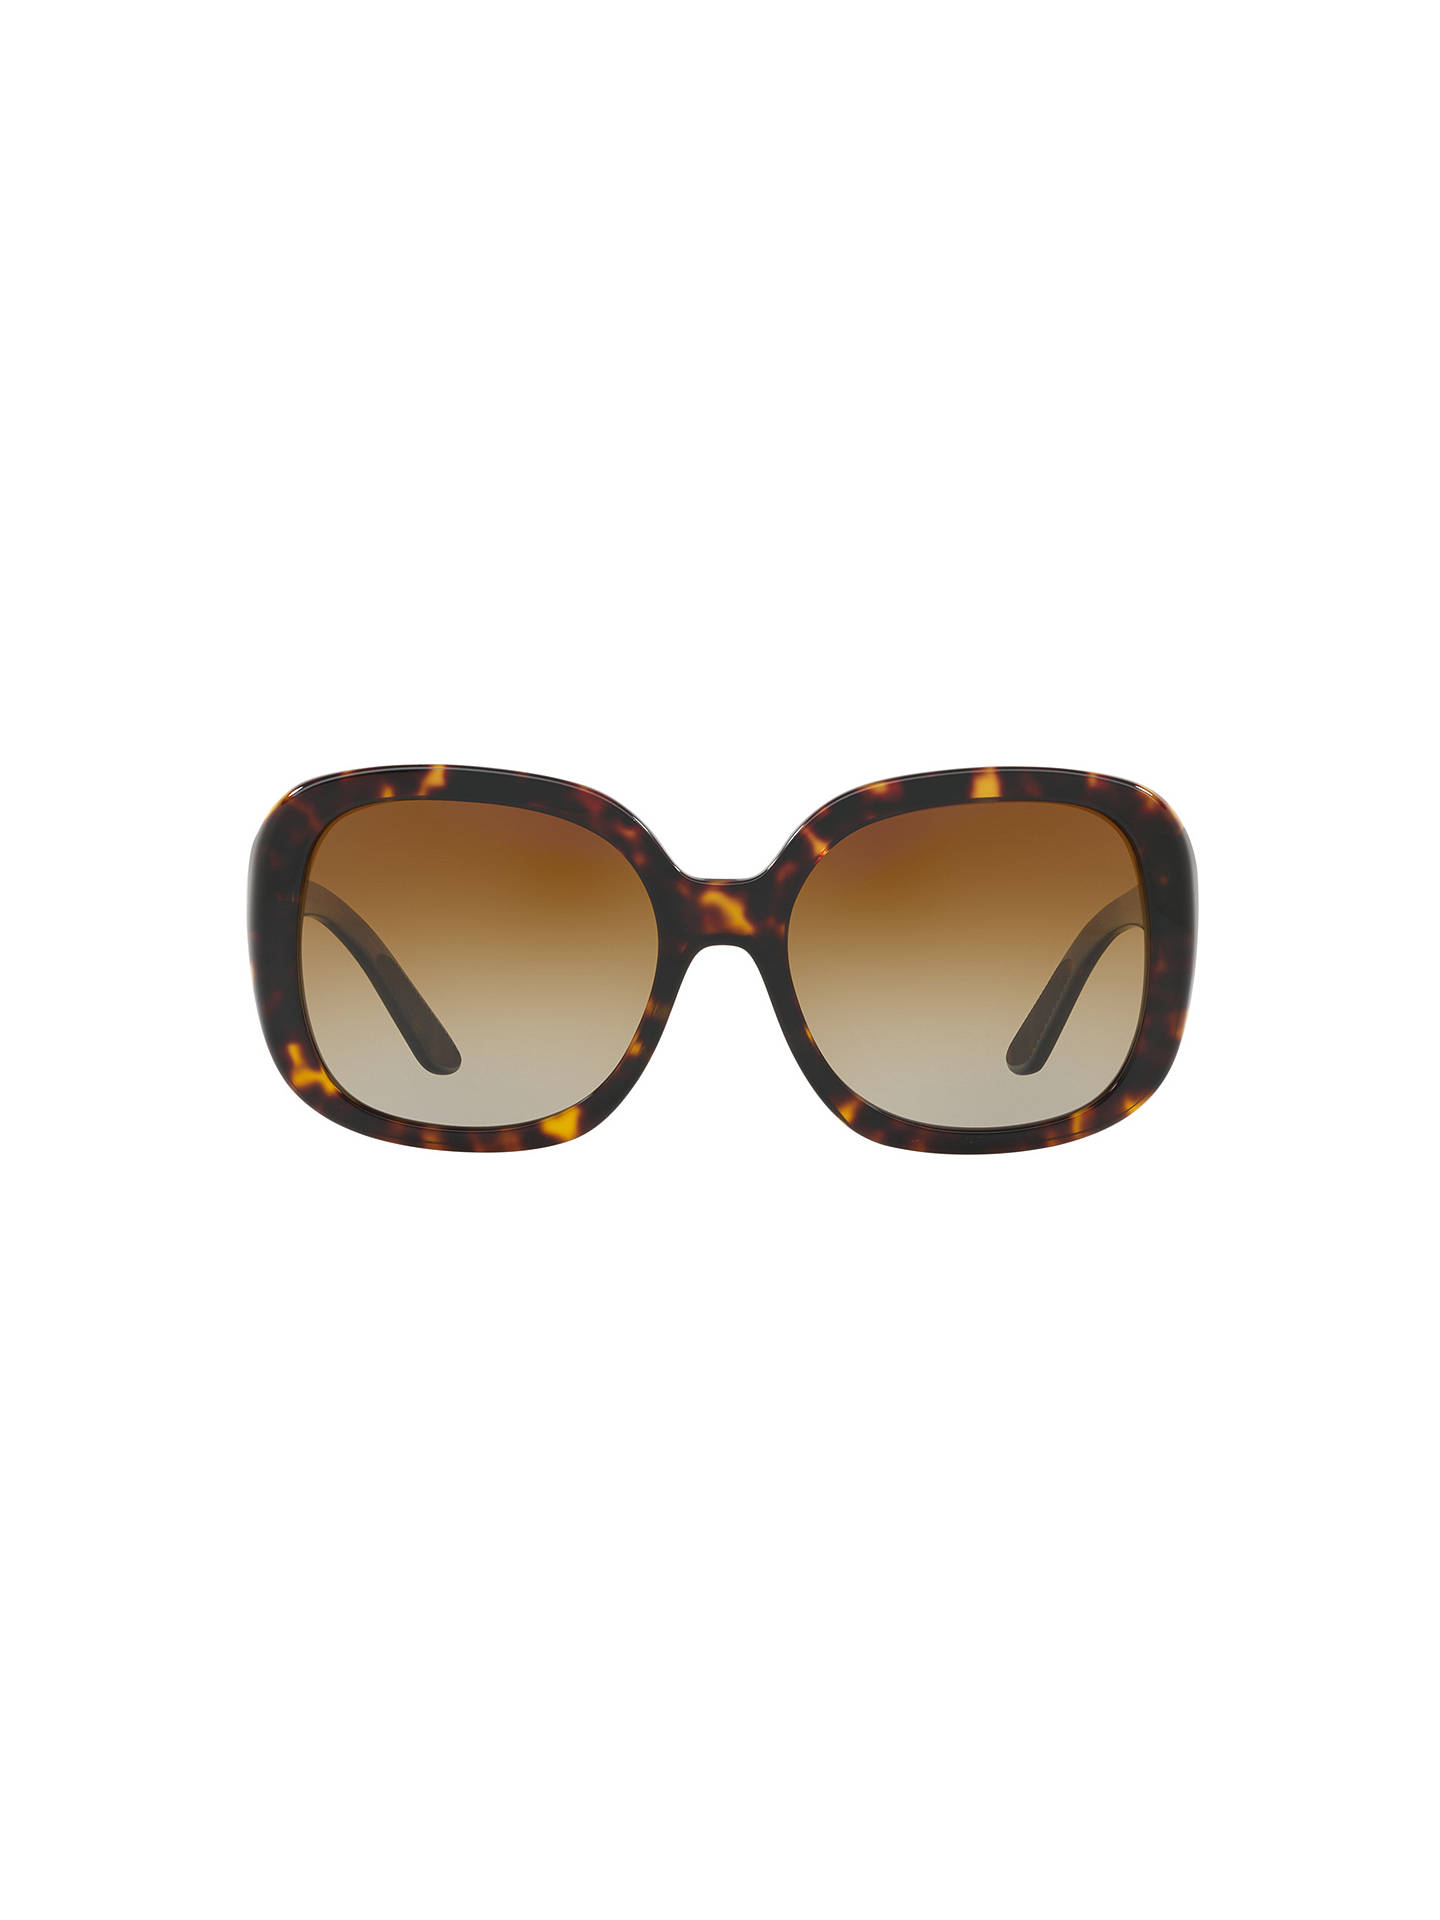 BuyBurberry BE4259 Polarised Square Sunglasses, Tortoise/Brown Gradient Online at johnlewis.com